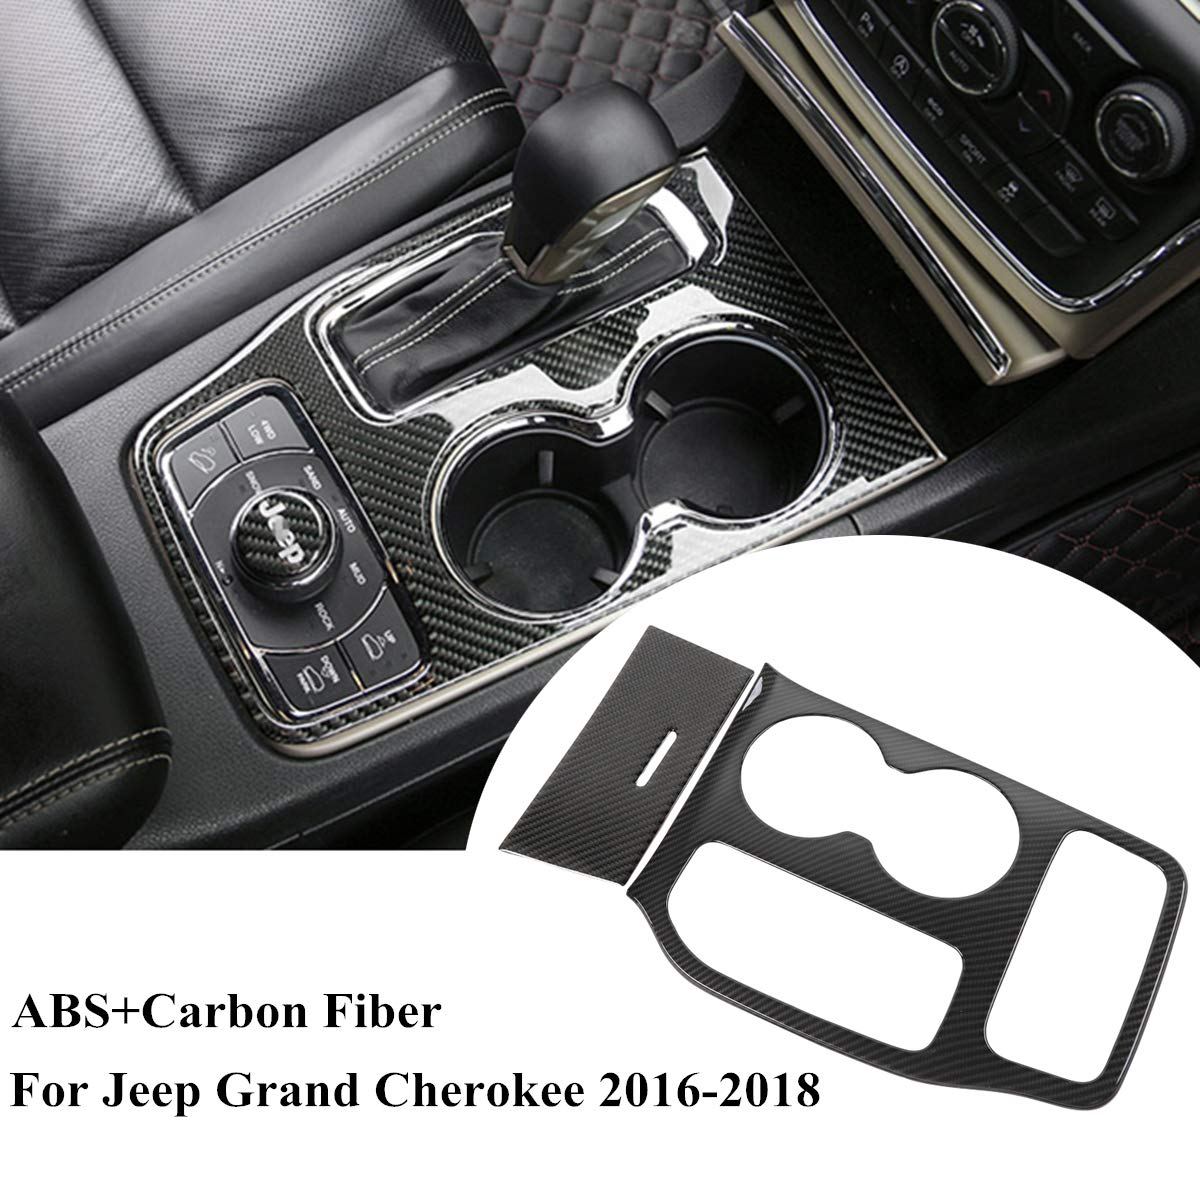 Real Carbon Fiber Water Cup Holder Cover Trim For Jeep Grand Cherokee 2016-2018